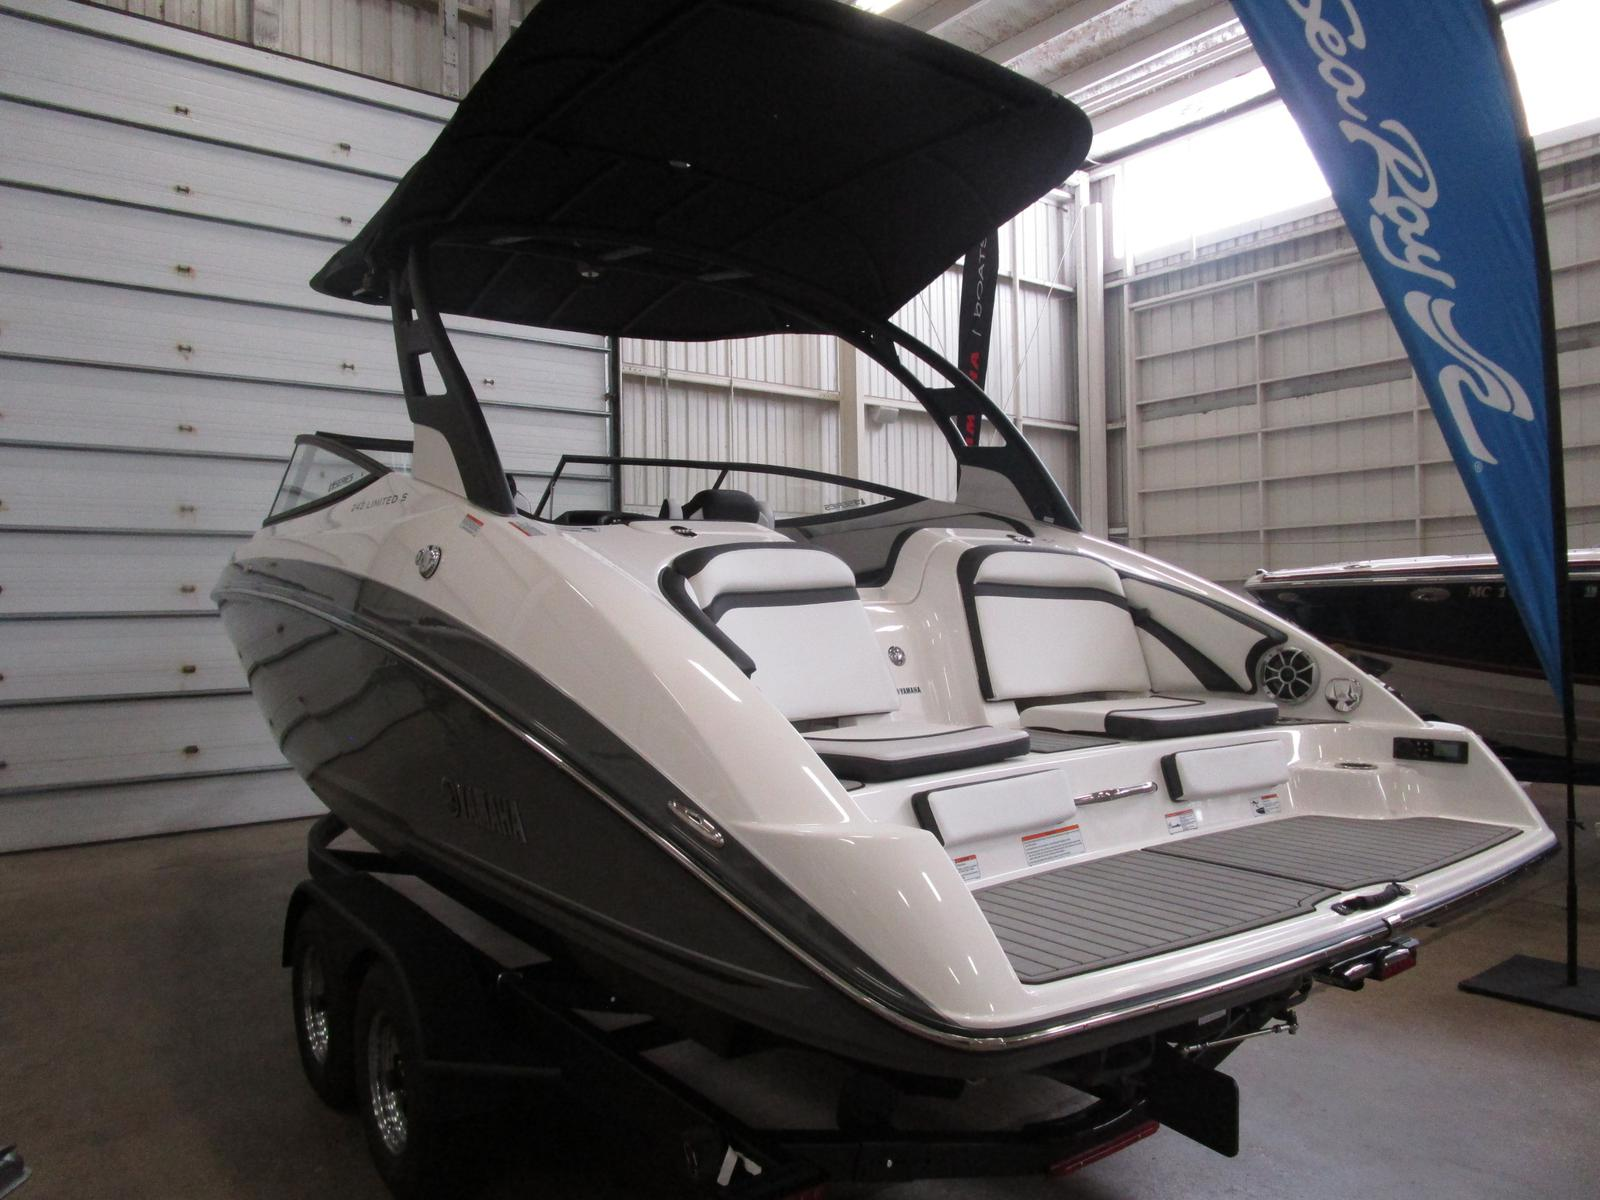 2019 Yamaha boat for sale, model of the boat is 242 Limited S E-Series & Image # 2 of 7